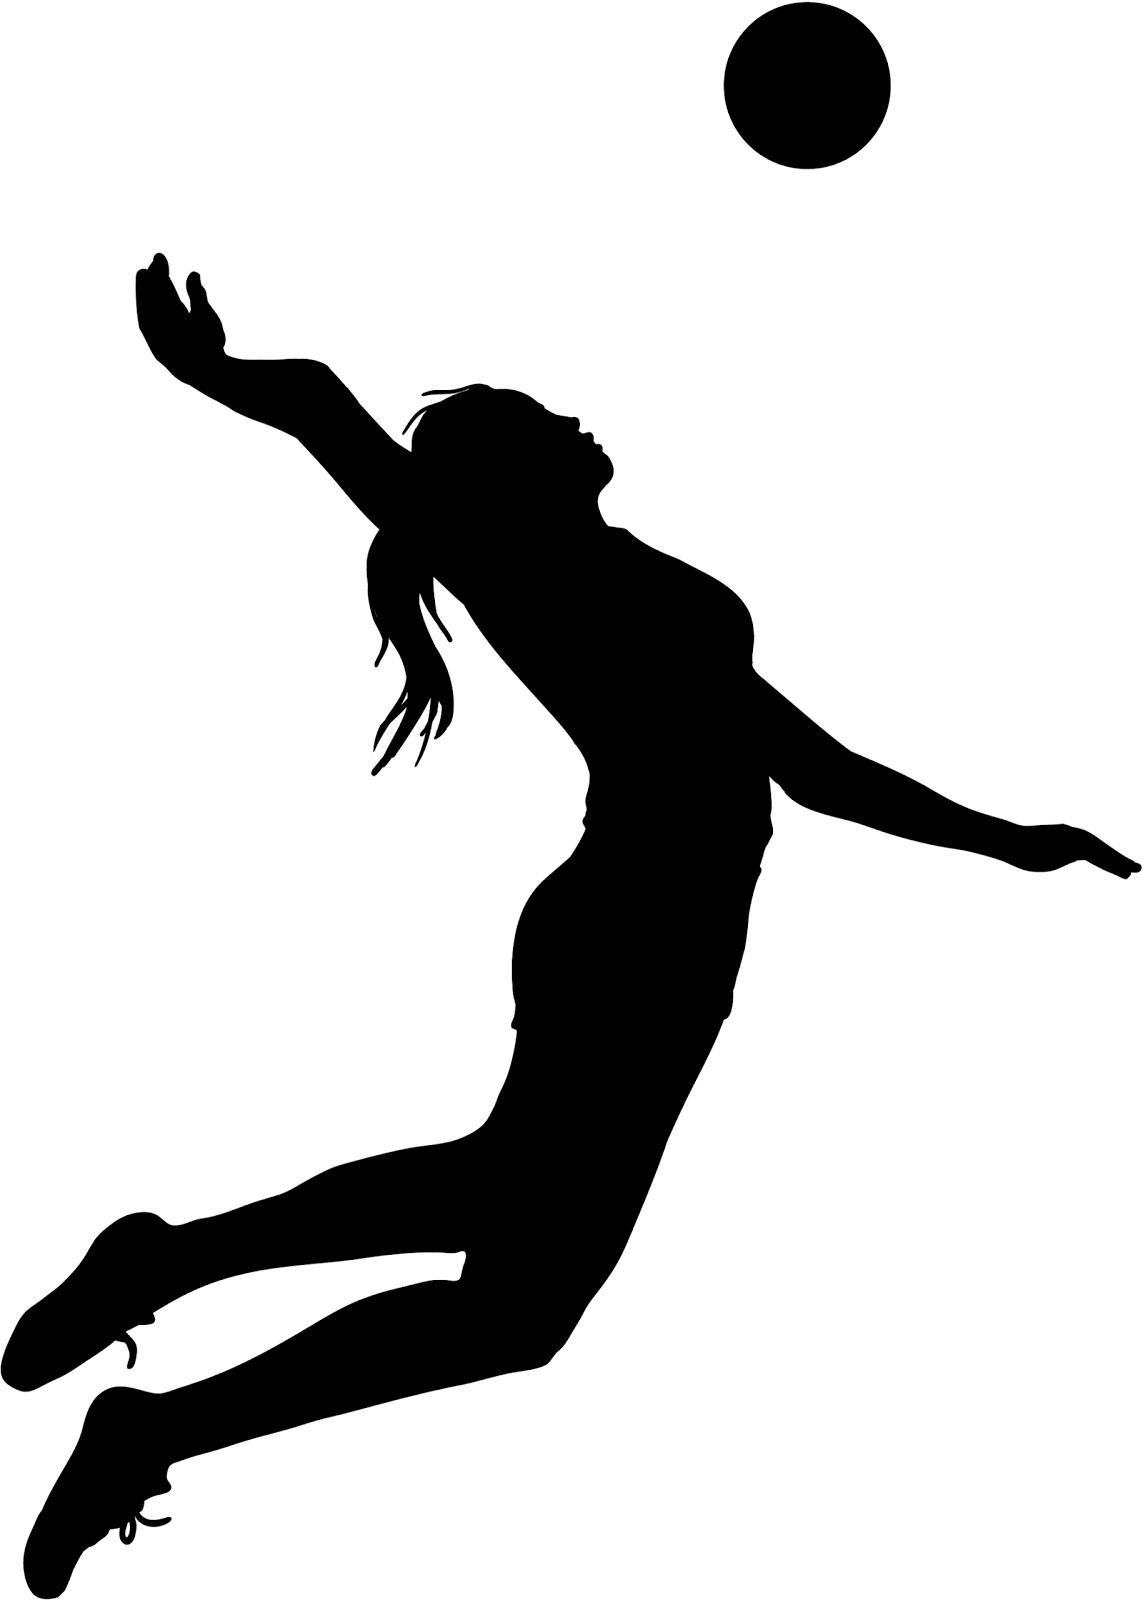 Volleyball Player Silhouette .